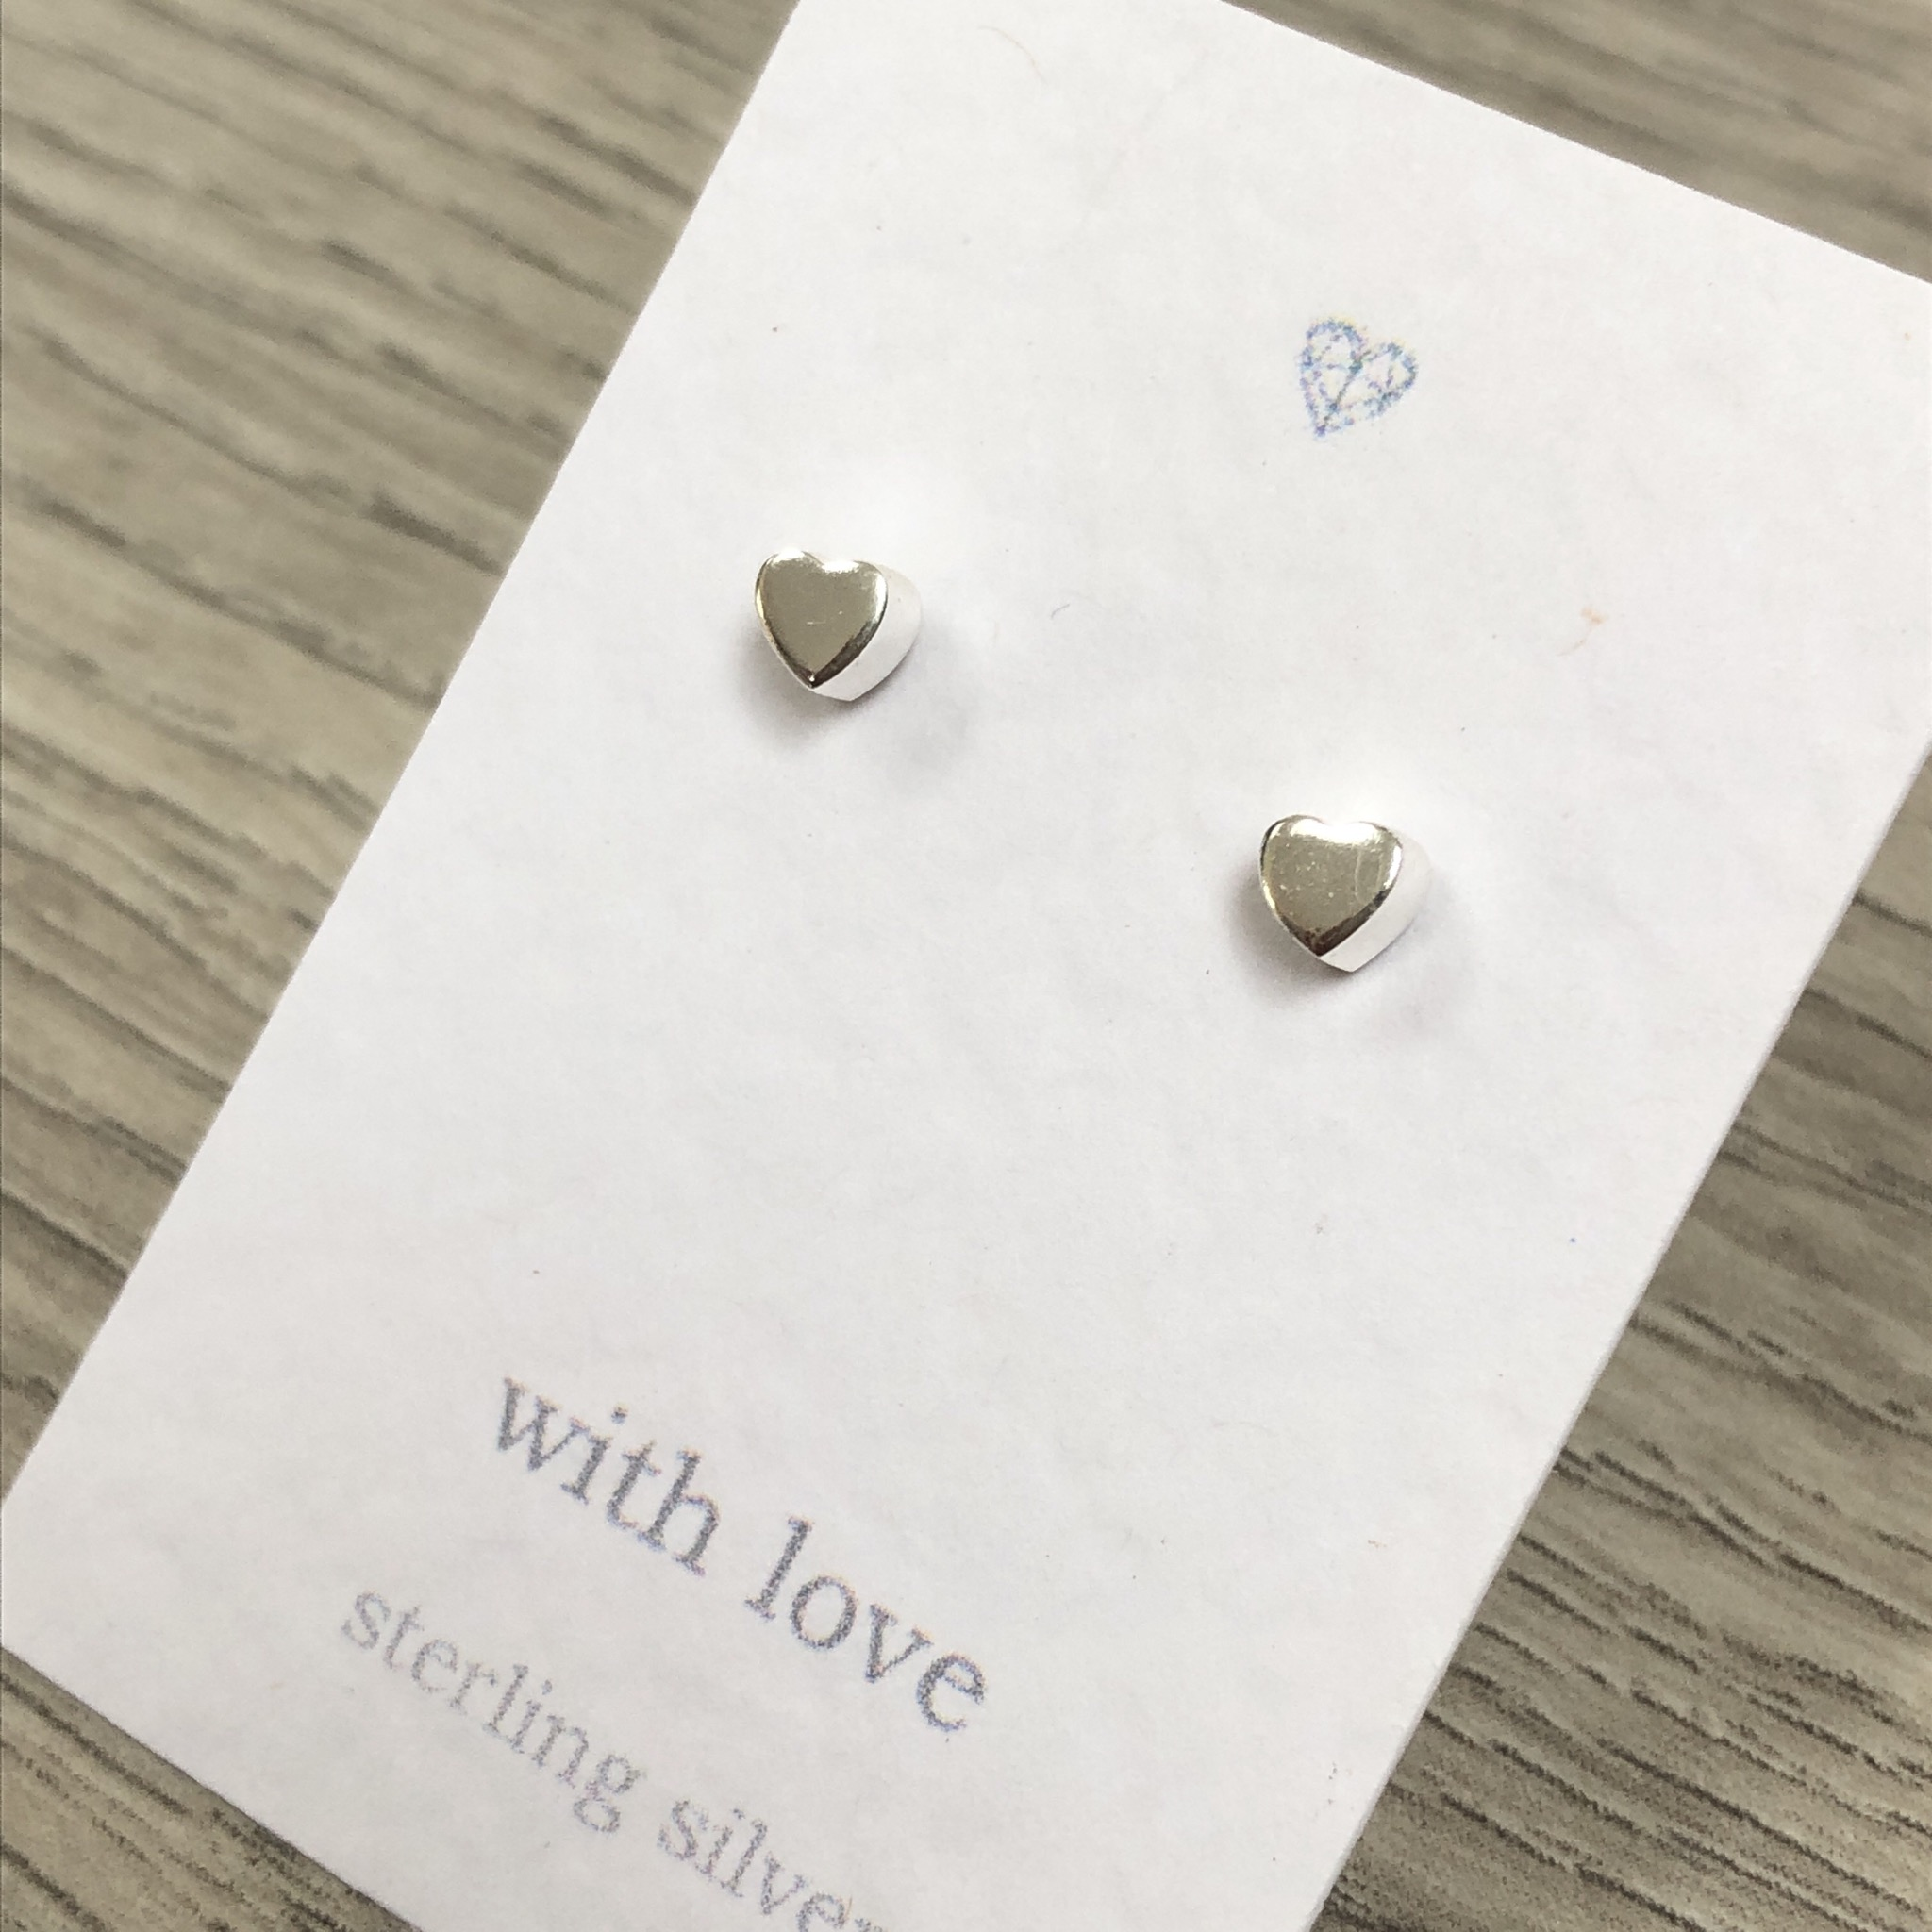 Chunky heart sterling silver stud earrings